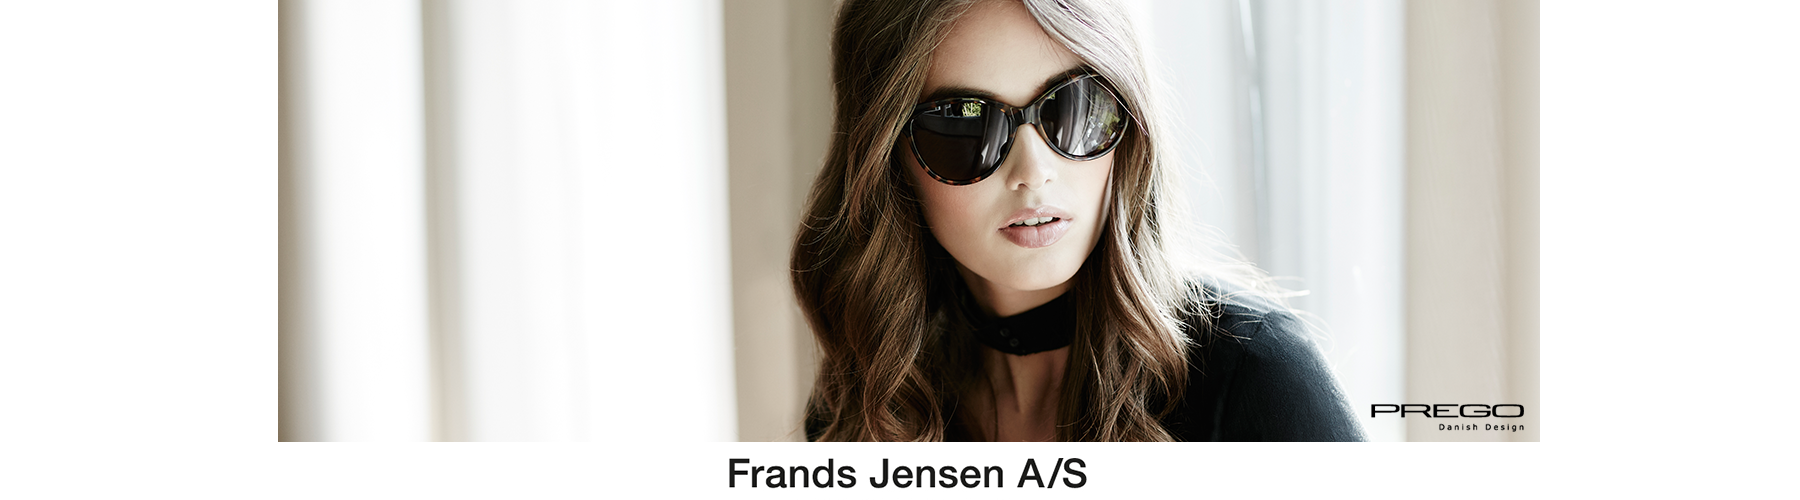 FRANDS JENSEN A/S cover image